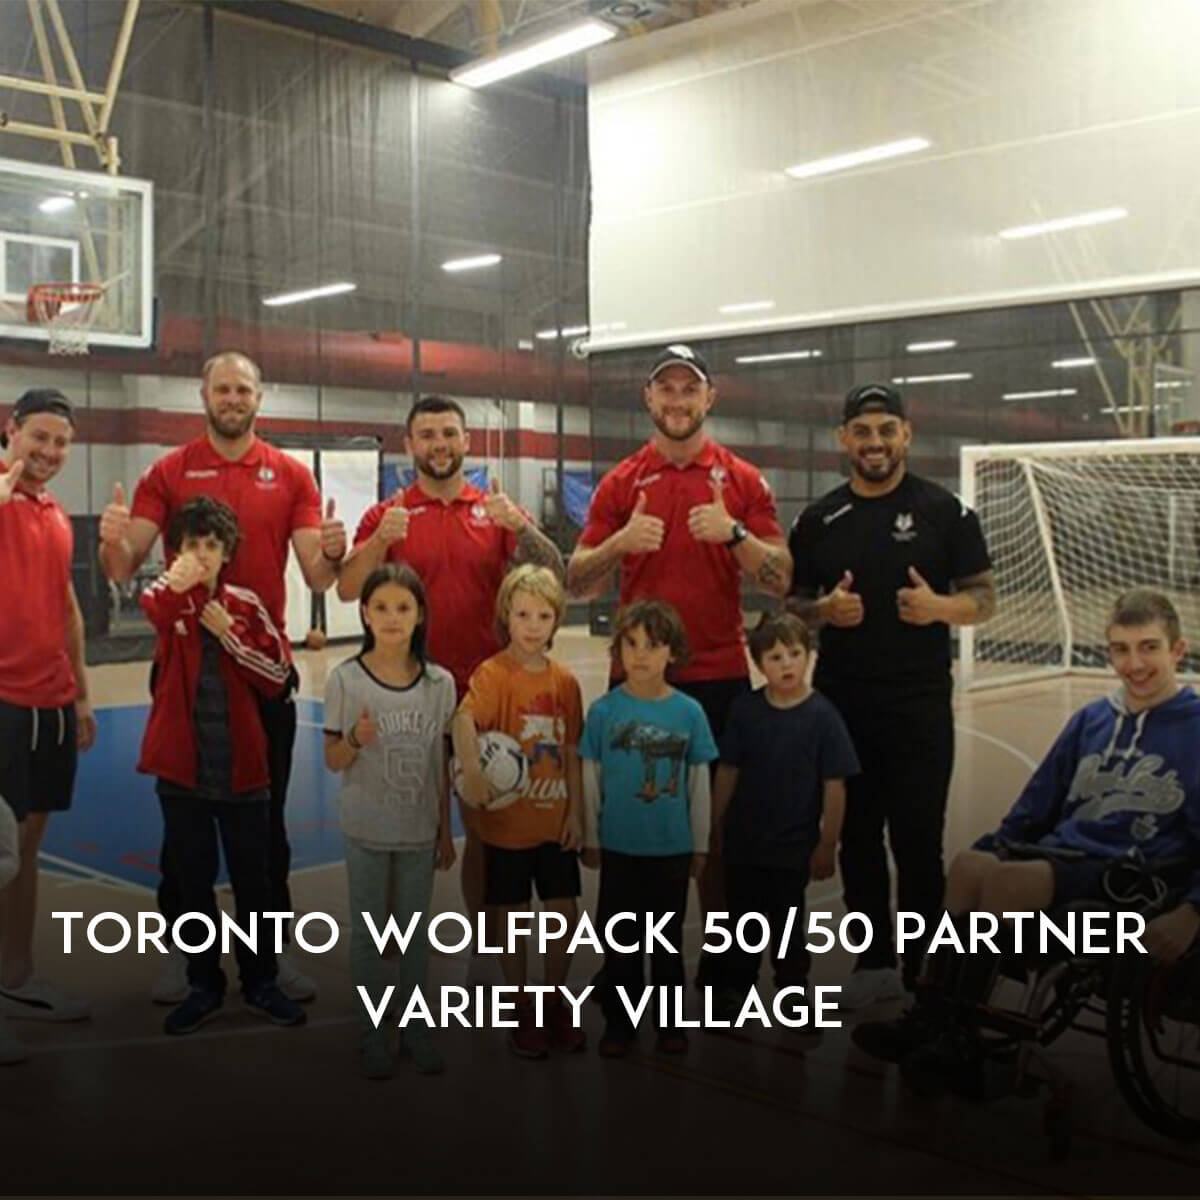 After establishing a successful partnership in 2017, Toronto Wolfpack are proud to announce a continued 50/50 raffle draw at Lamport Stadium to support @VarietyVillage - the Children's Charity of Ontario.  More information   http:// bit.ly/2HMPi9R    <br>http://pic.twitter.com/E4tz9lGzXd